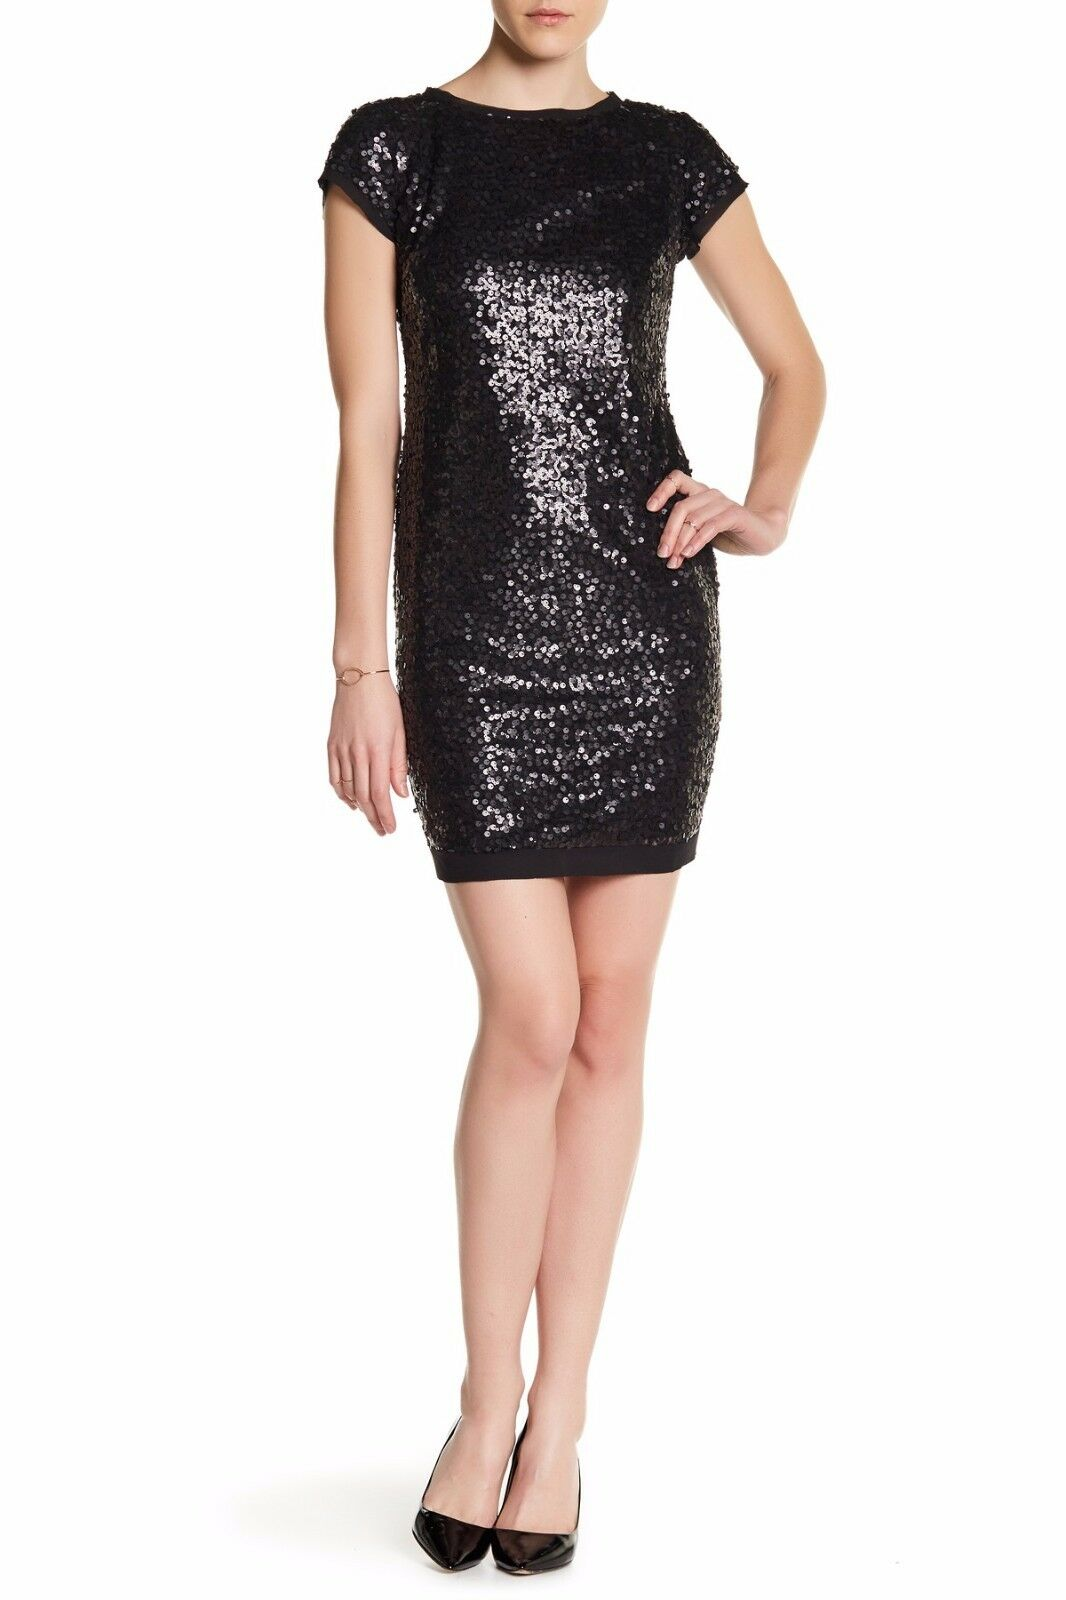 Vince Camuto Short Sleeve Sequin Dress (Size 10)